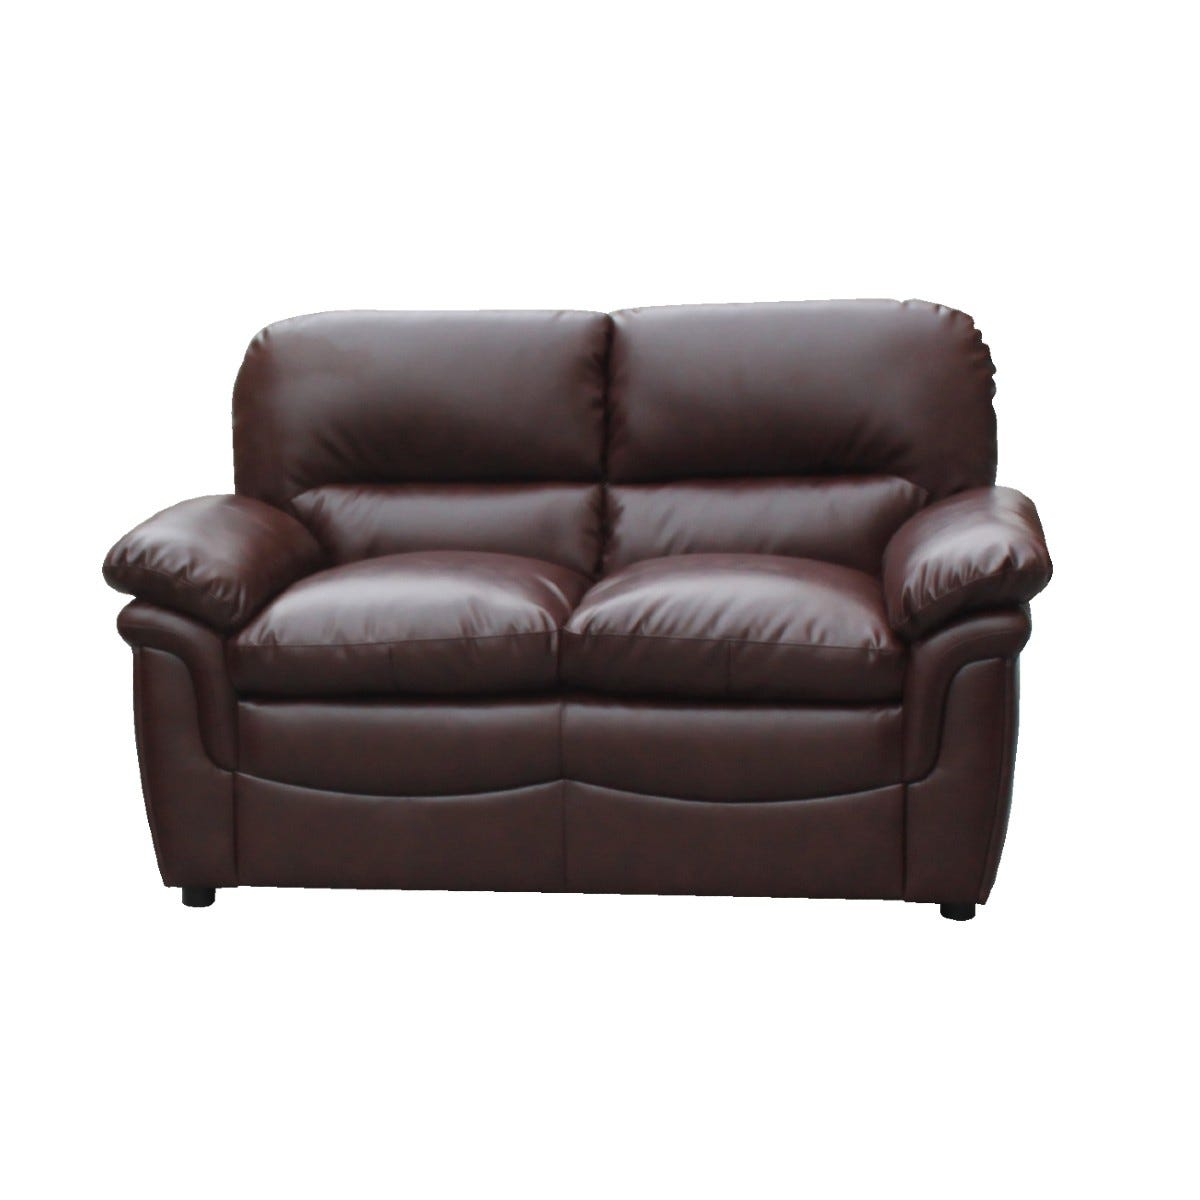 Filton Bonded Faux Leather 2 Seater Sofa Brown